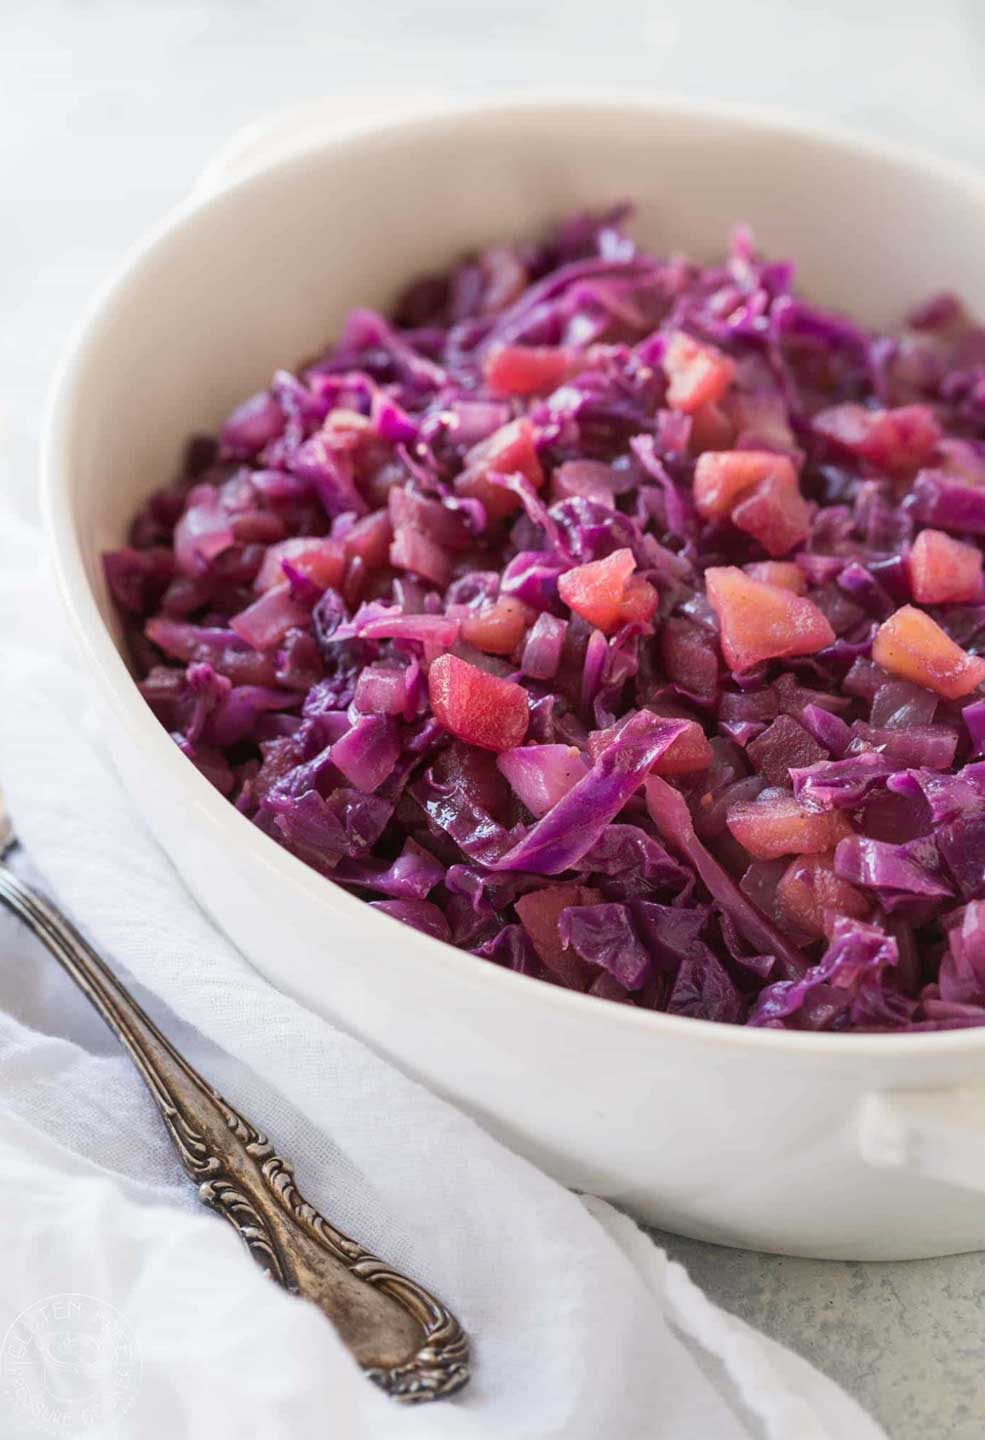 Fall apples and nutritious cabbage are so pretty together in this healthy Thanksgiving side dish!